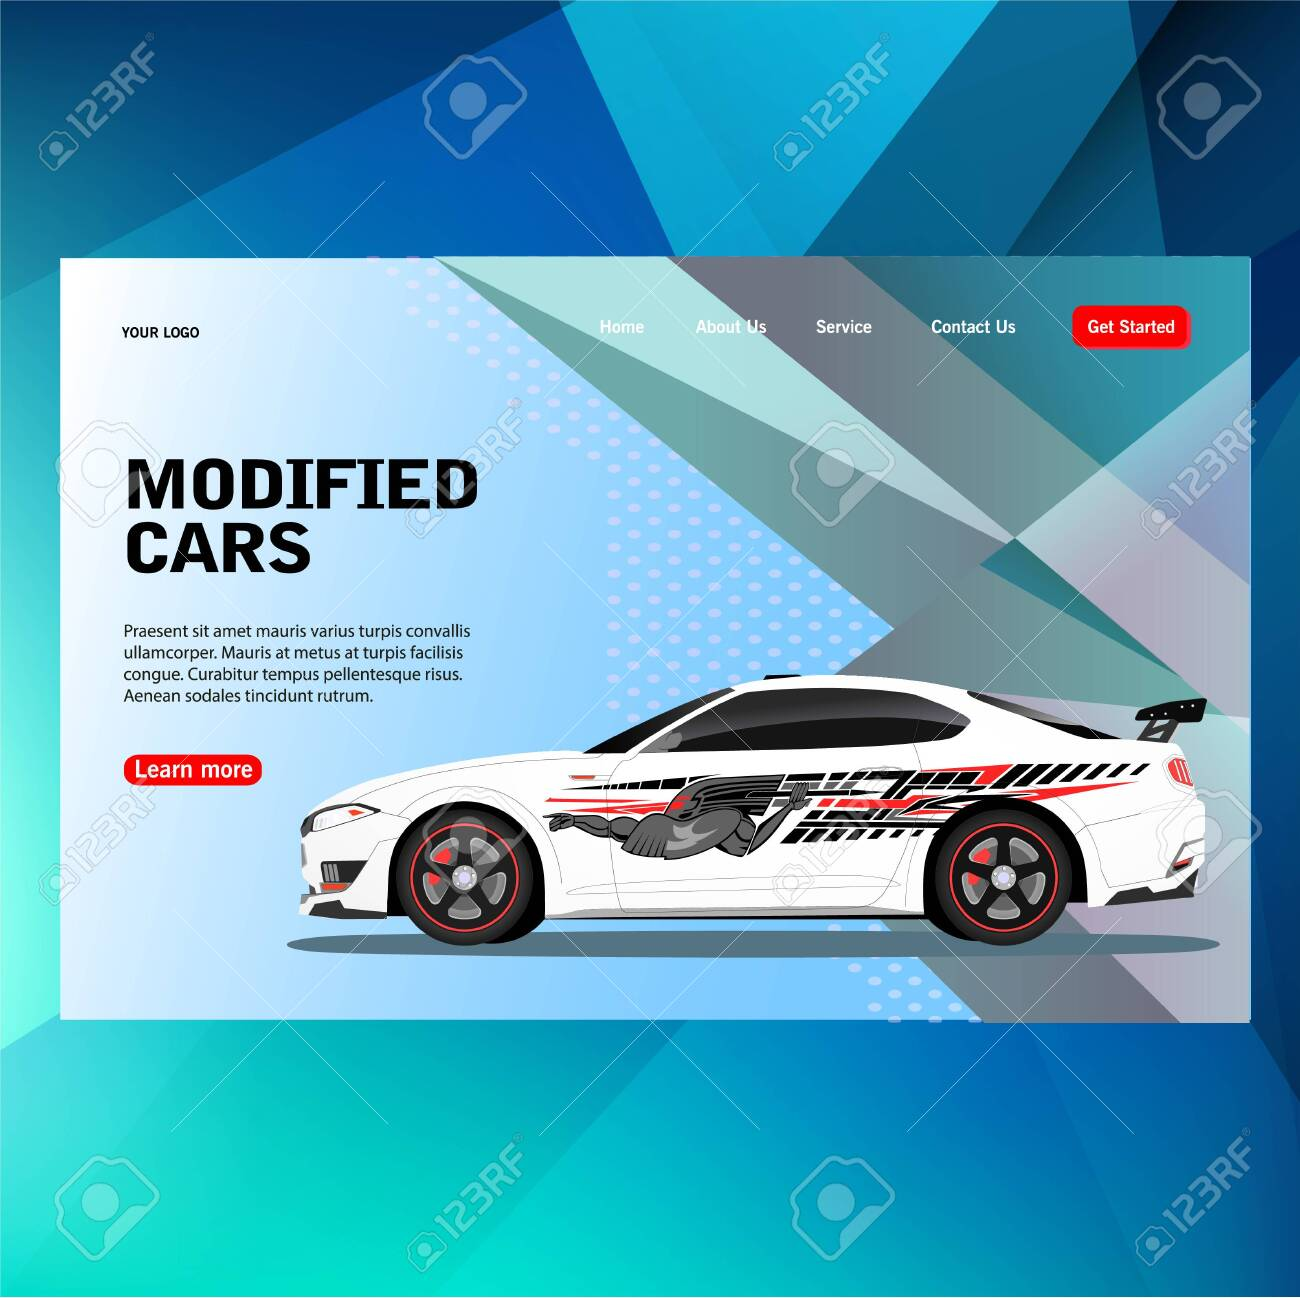 Usd 9 11 Ink Trend Modified Car Paste Color One Day Monochrome Reflective Hollow Hf Jdm 100 Windshield Reflective Paste Wholesale From China Online Shopping Buy Asian Products Online From The